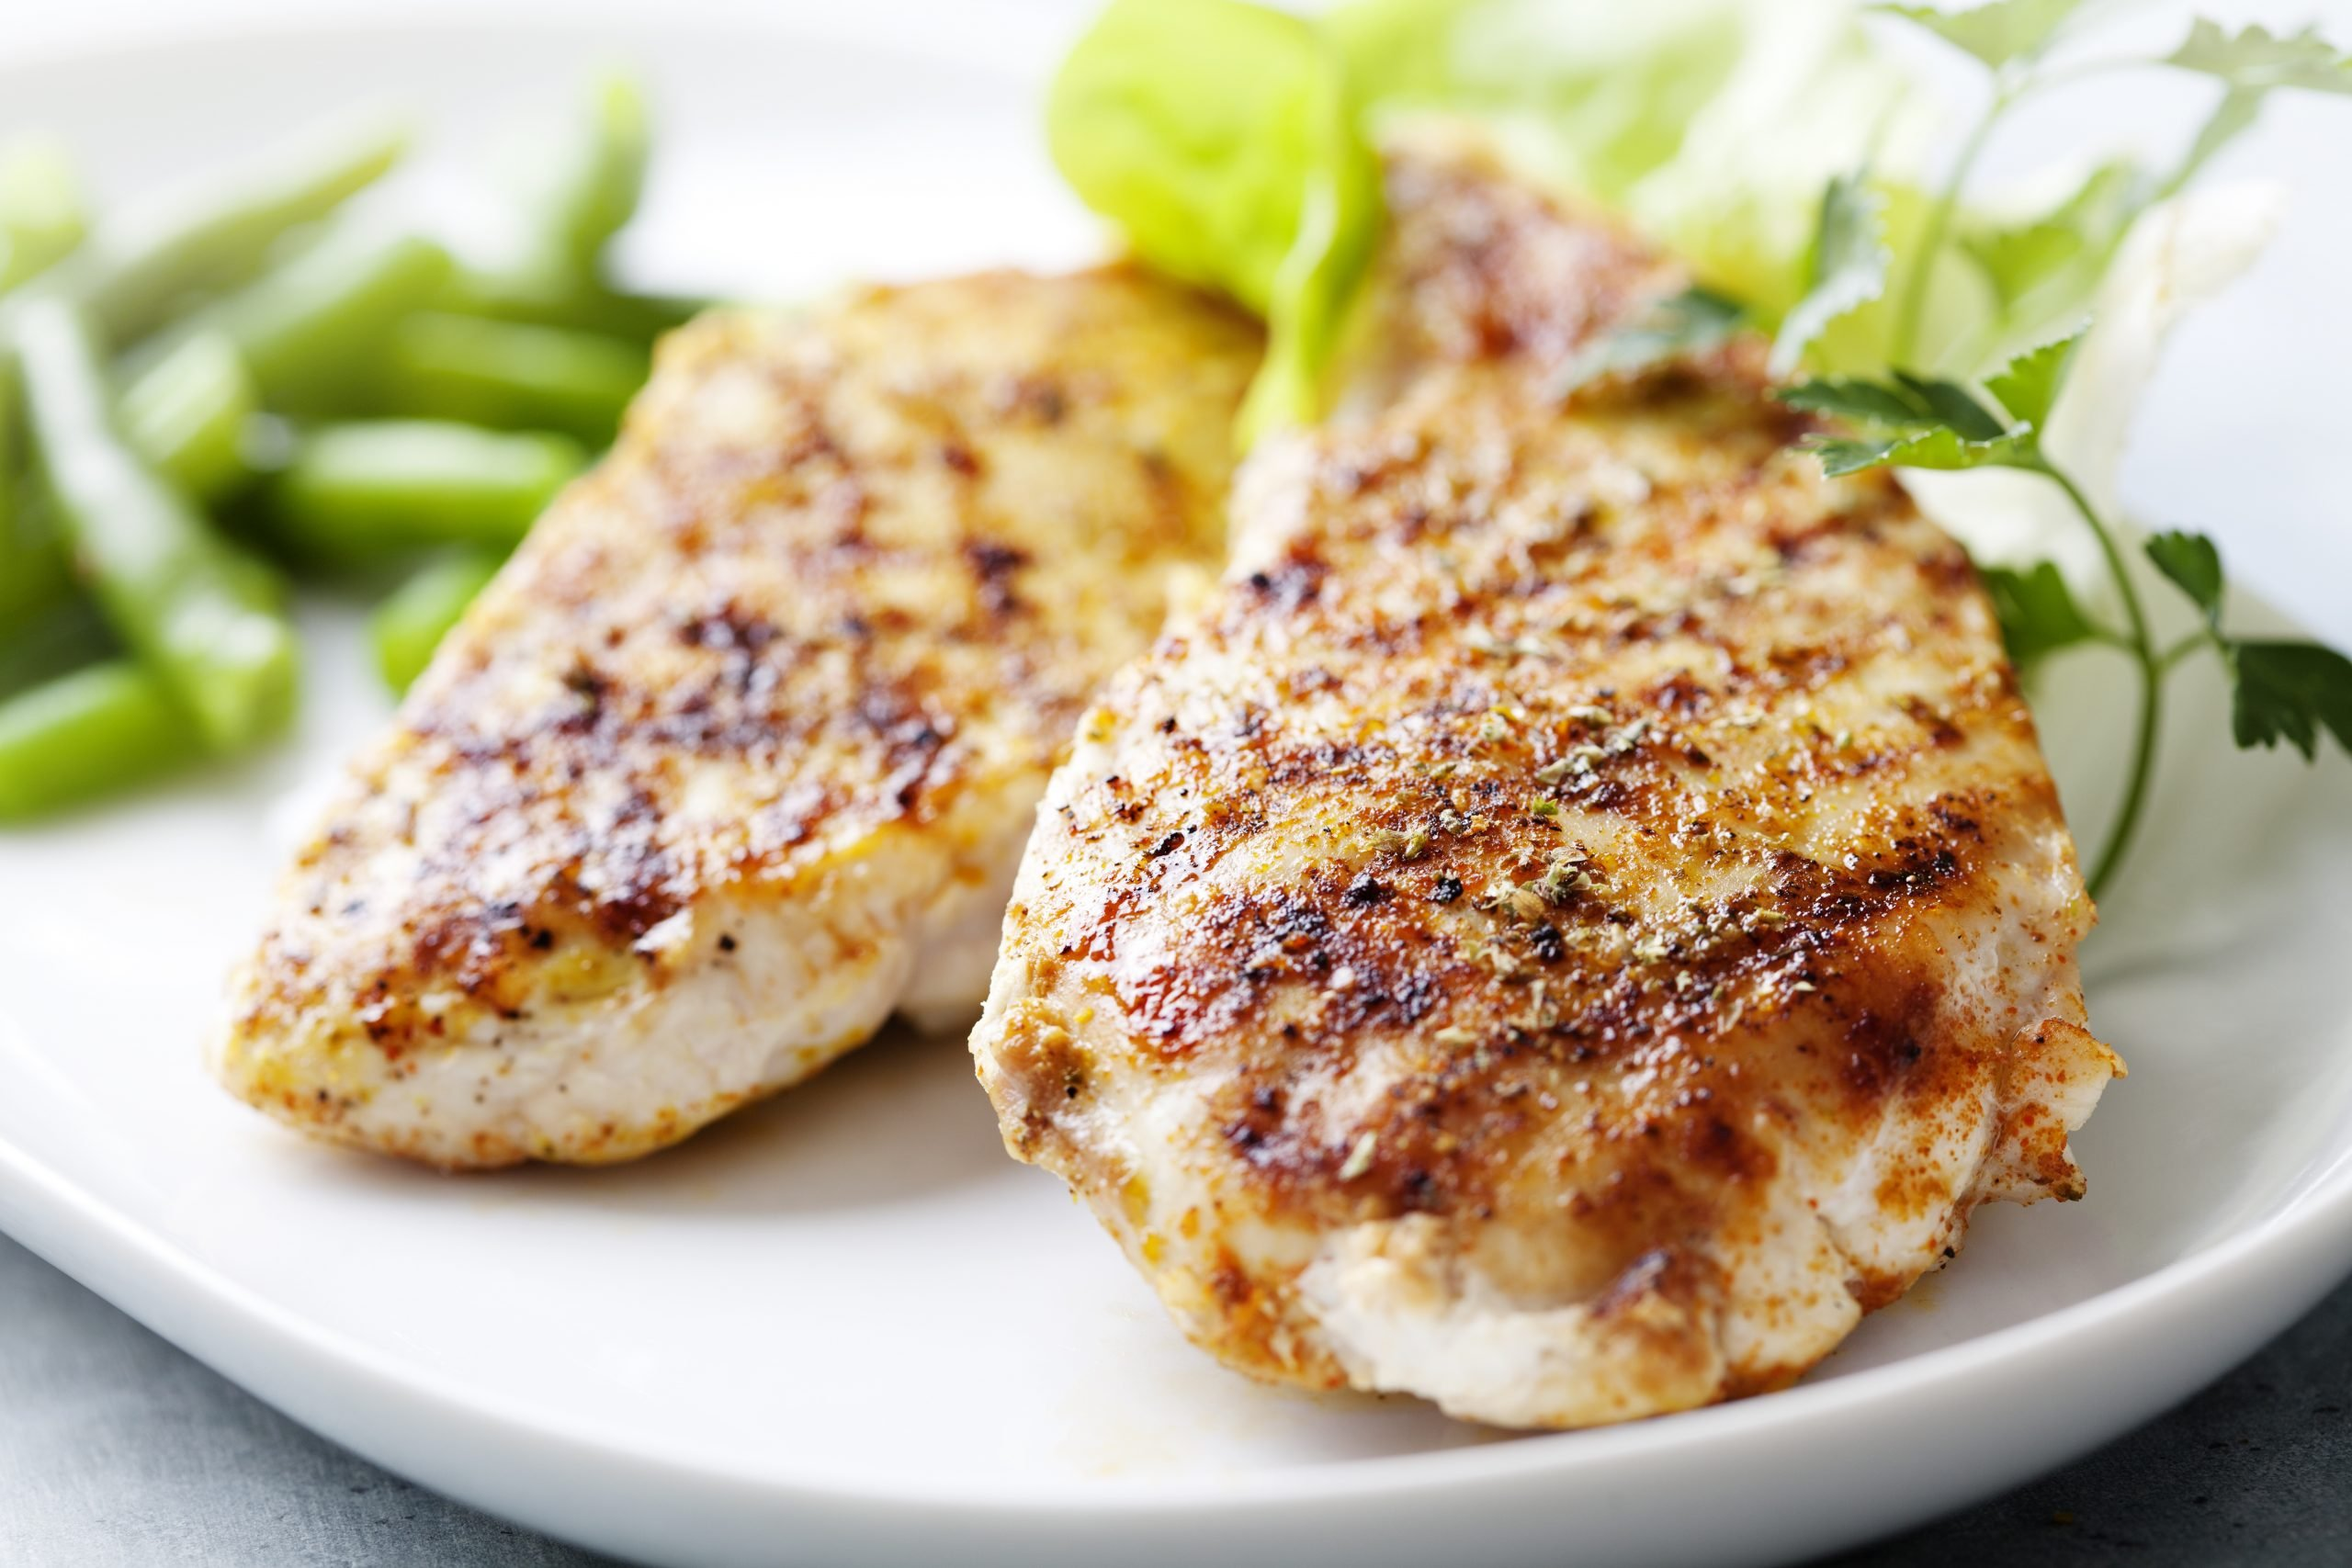 Wines and Gourmet Foods Center, marinated chicken and wine recipe